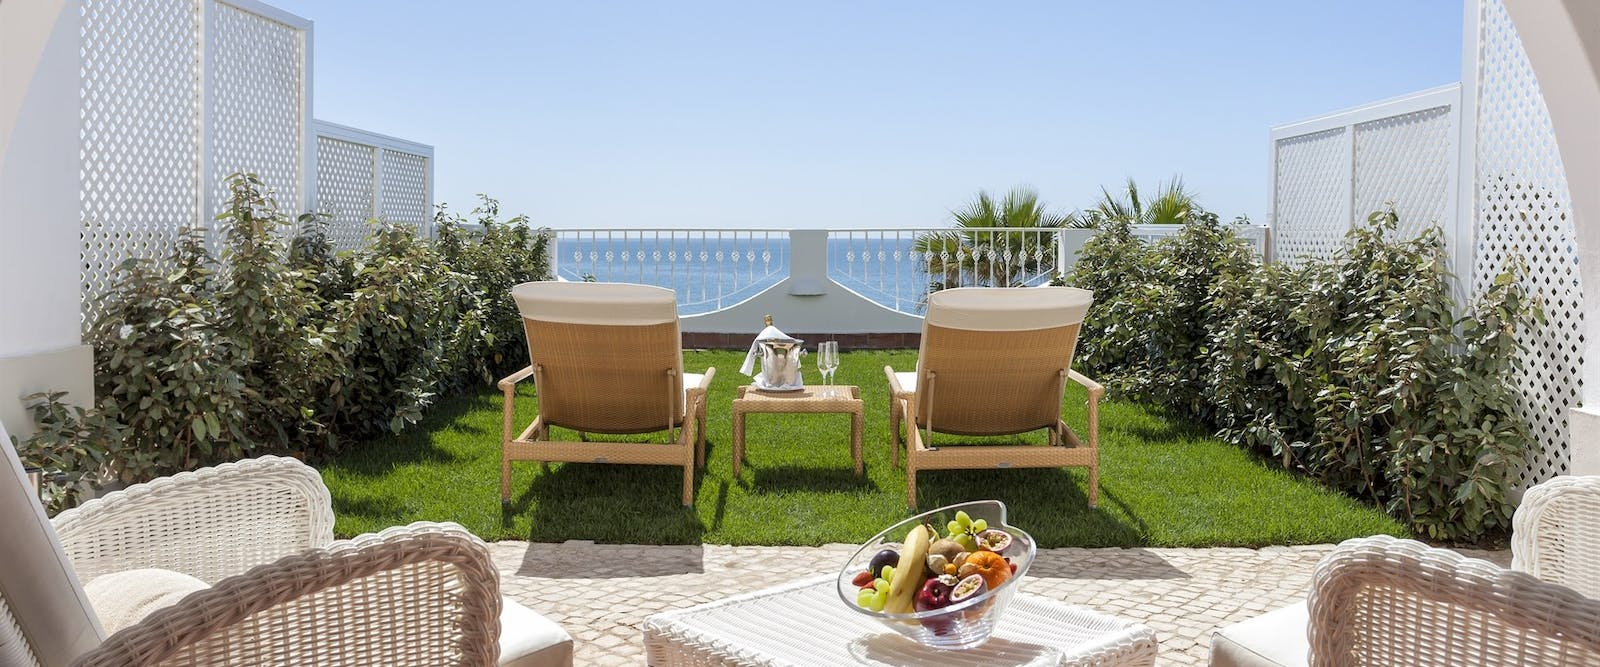 Deluxe Ocean View Terrace at Vila Vita Parc, Algarve